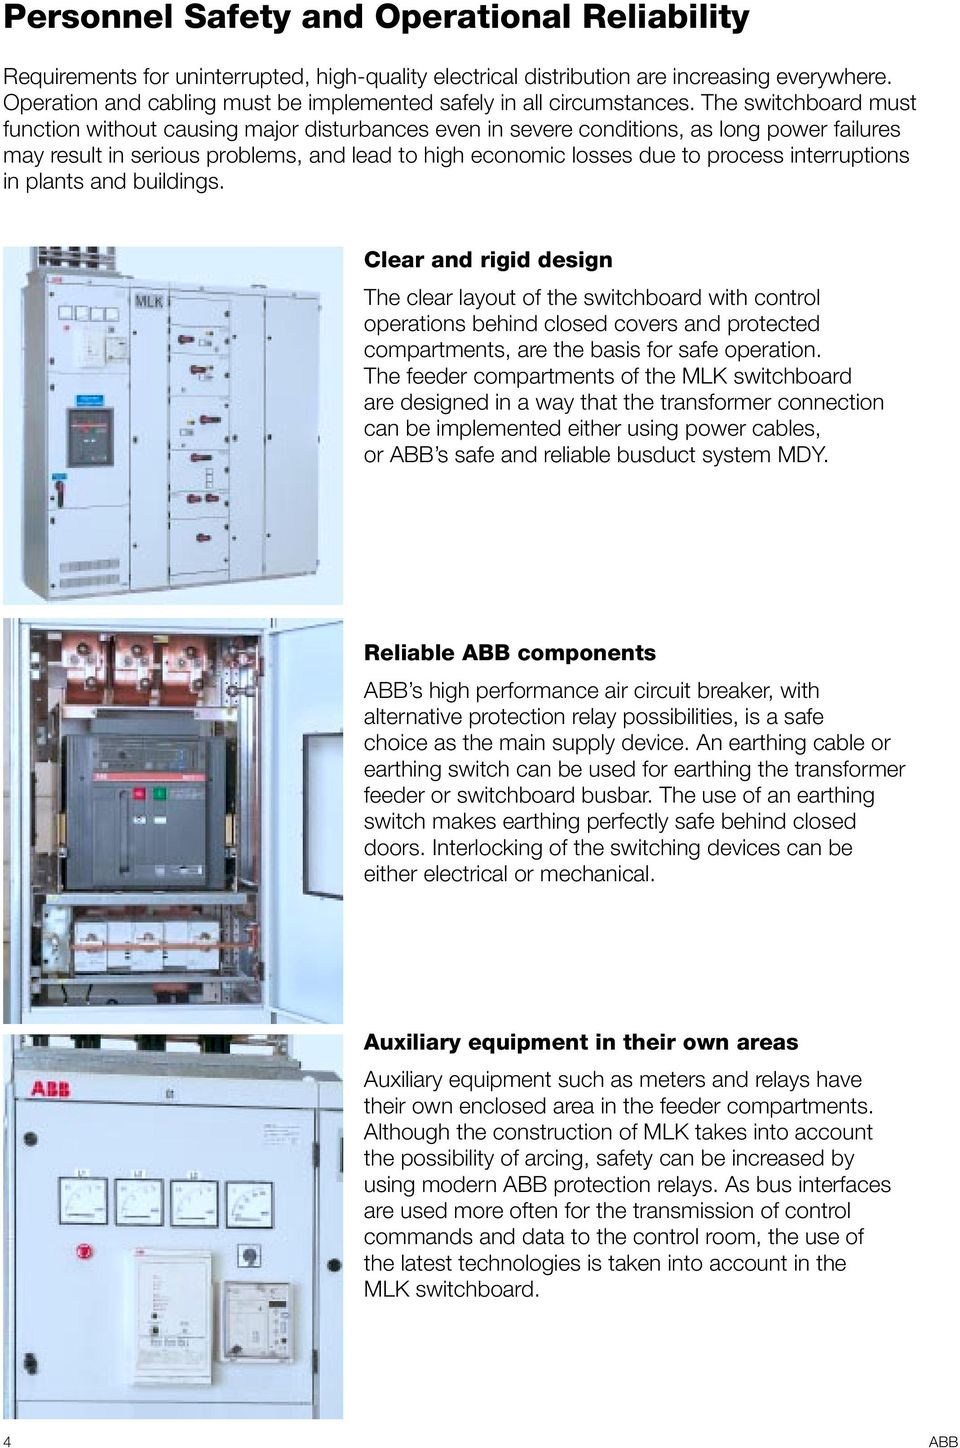 Mlk Low Voltage Switchboard System Pdf Used Circuit Breakers Fuji Buesb2015 15 Amp 2 Pole Breaker The Must Function Without Causing Major Disturbances Even In Severe Conditions As Long Power